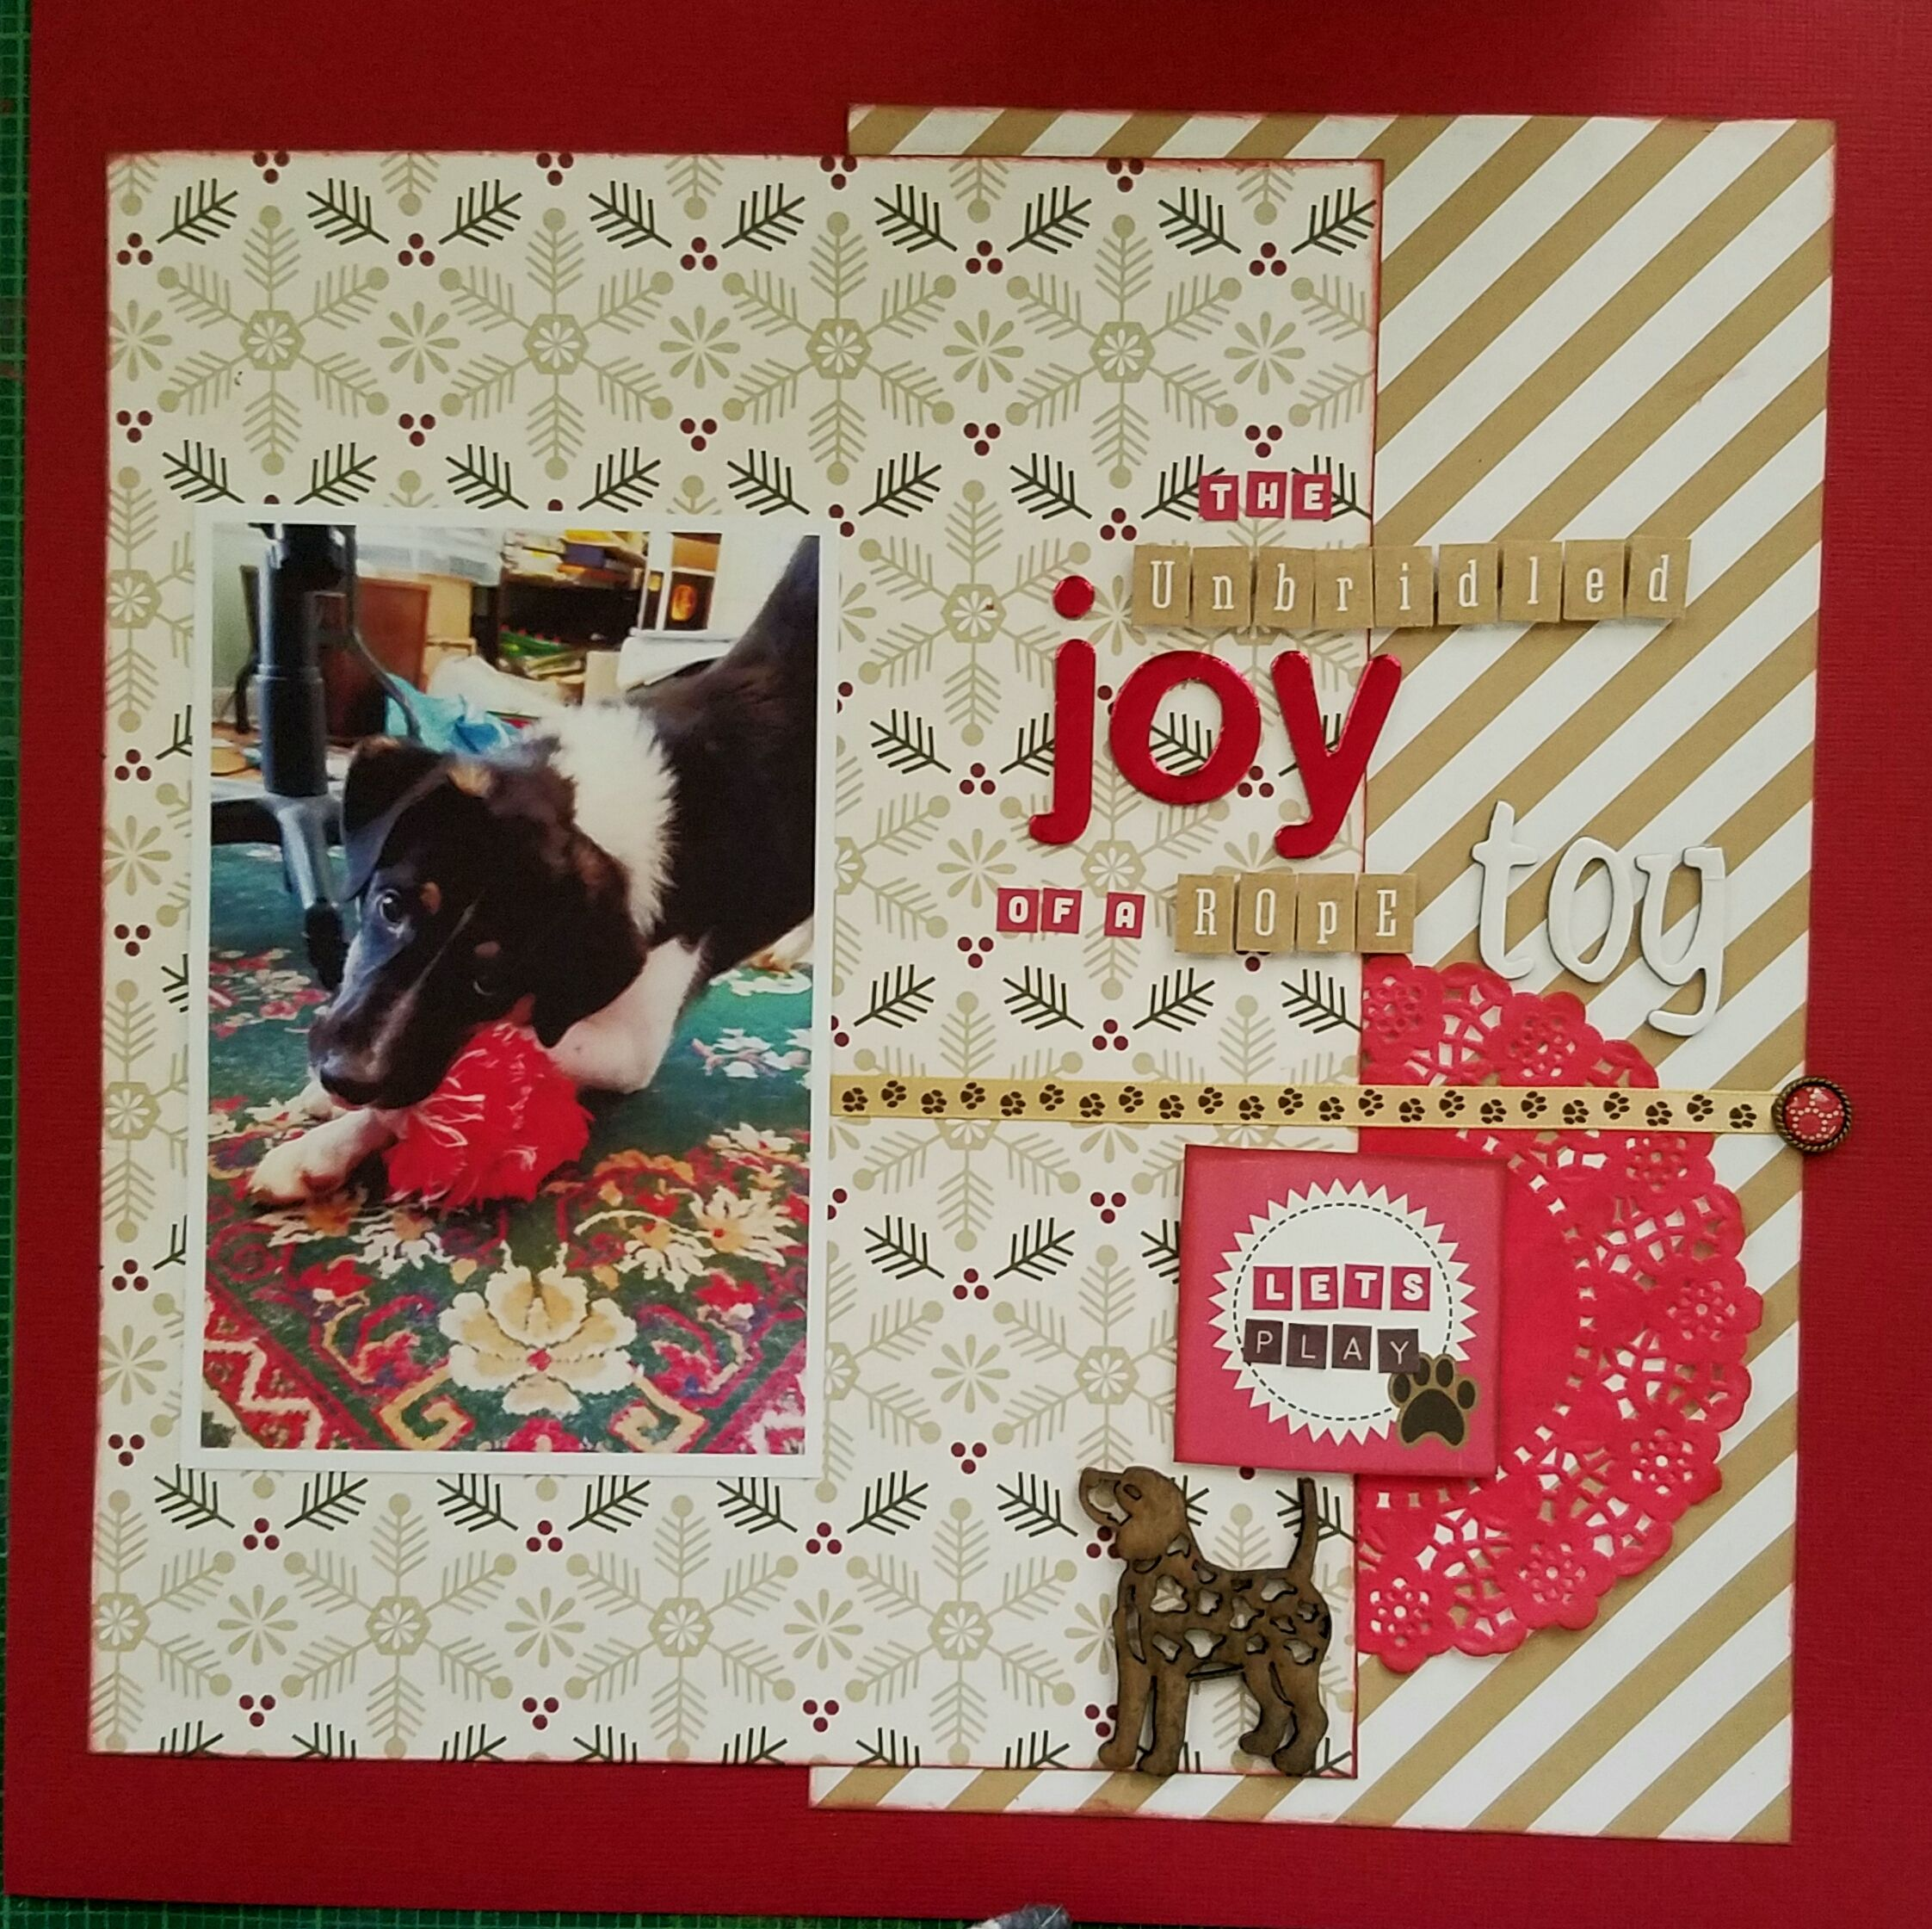 Scrapbook ideas for dogs - The Unvridled Joy Scrapbook Com Joy Scrapbookpuppy Ideaspet